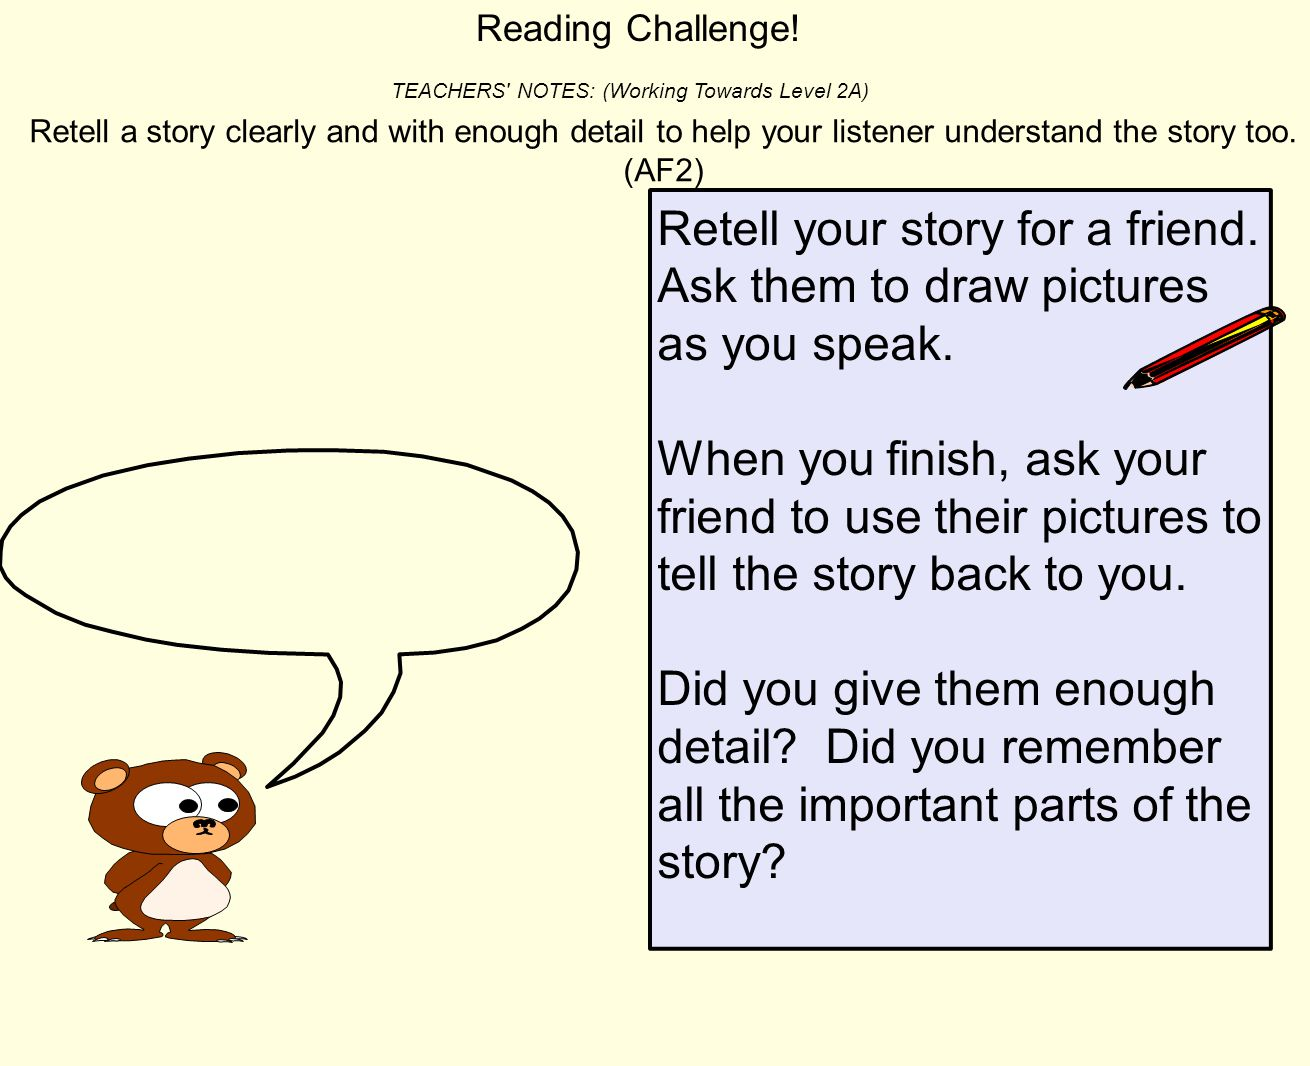 Reading Challenge! TEACHERS NOTES: (Working Towards Level 2A)